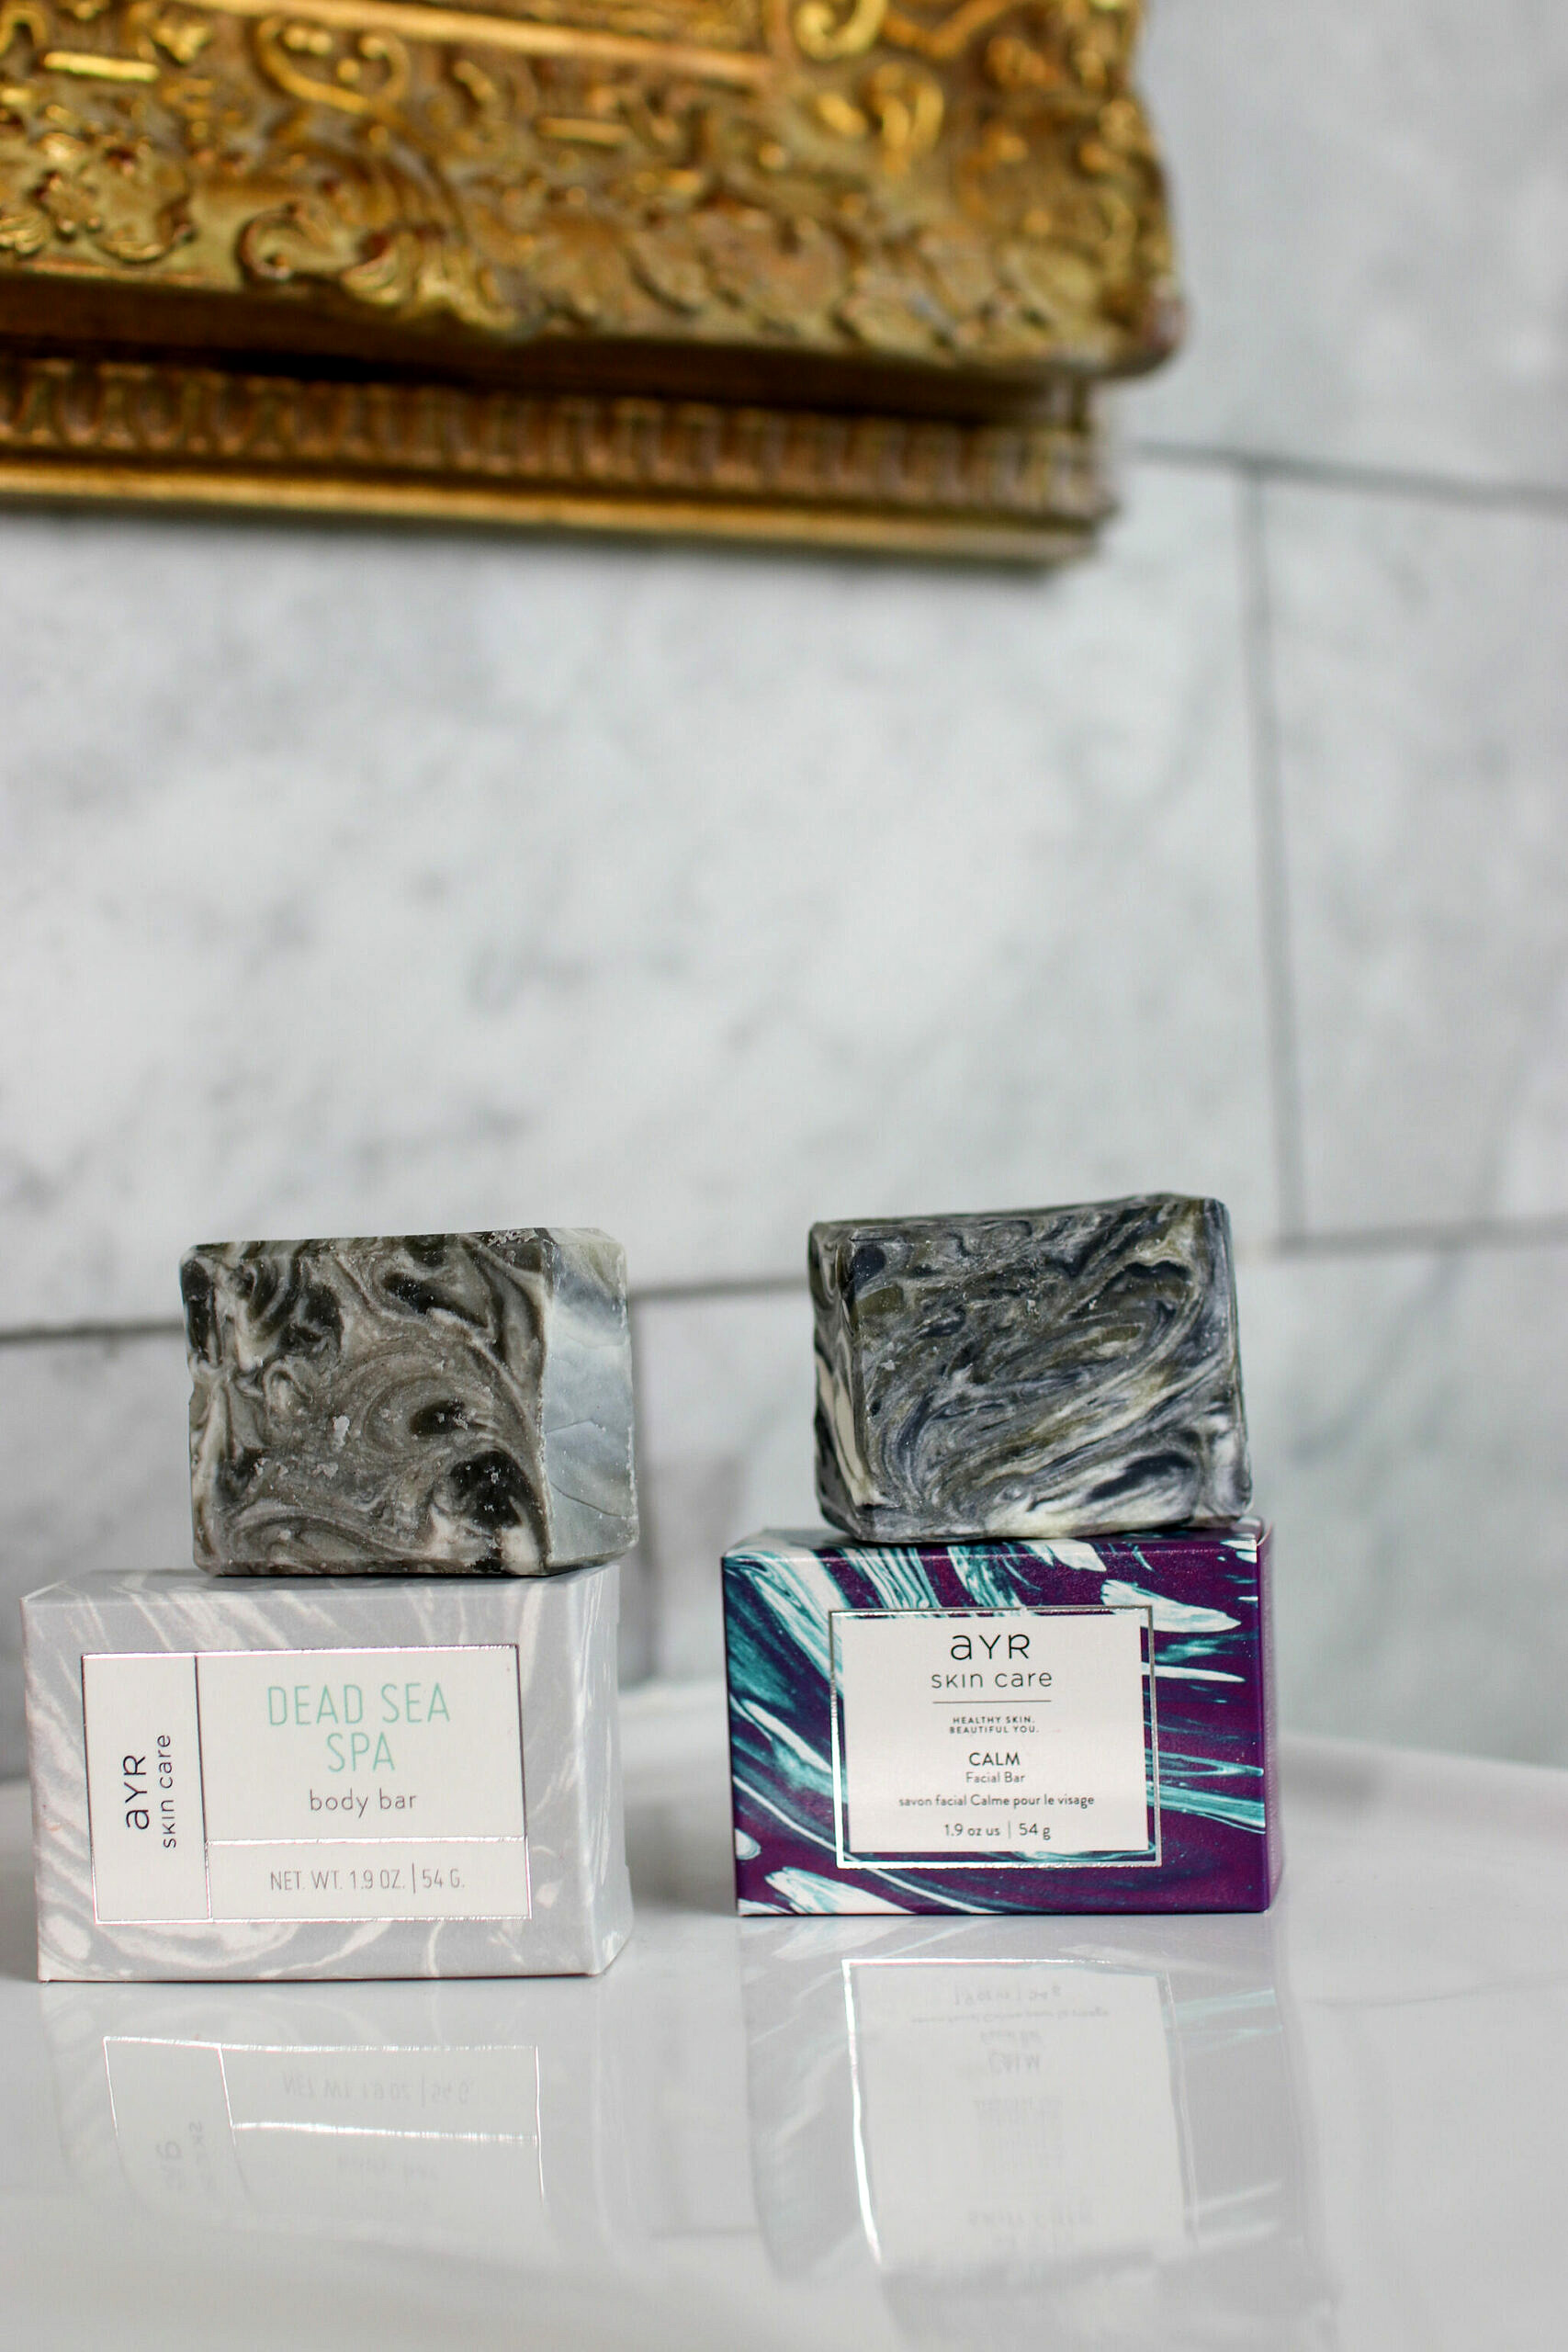 AYR Skincare Products | Organic and Carefully Sourced Natural Ingredients | Dead Sea Spa Body Bar and Calm Facial Bar